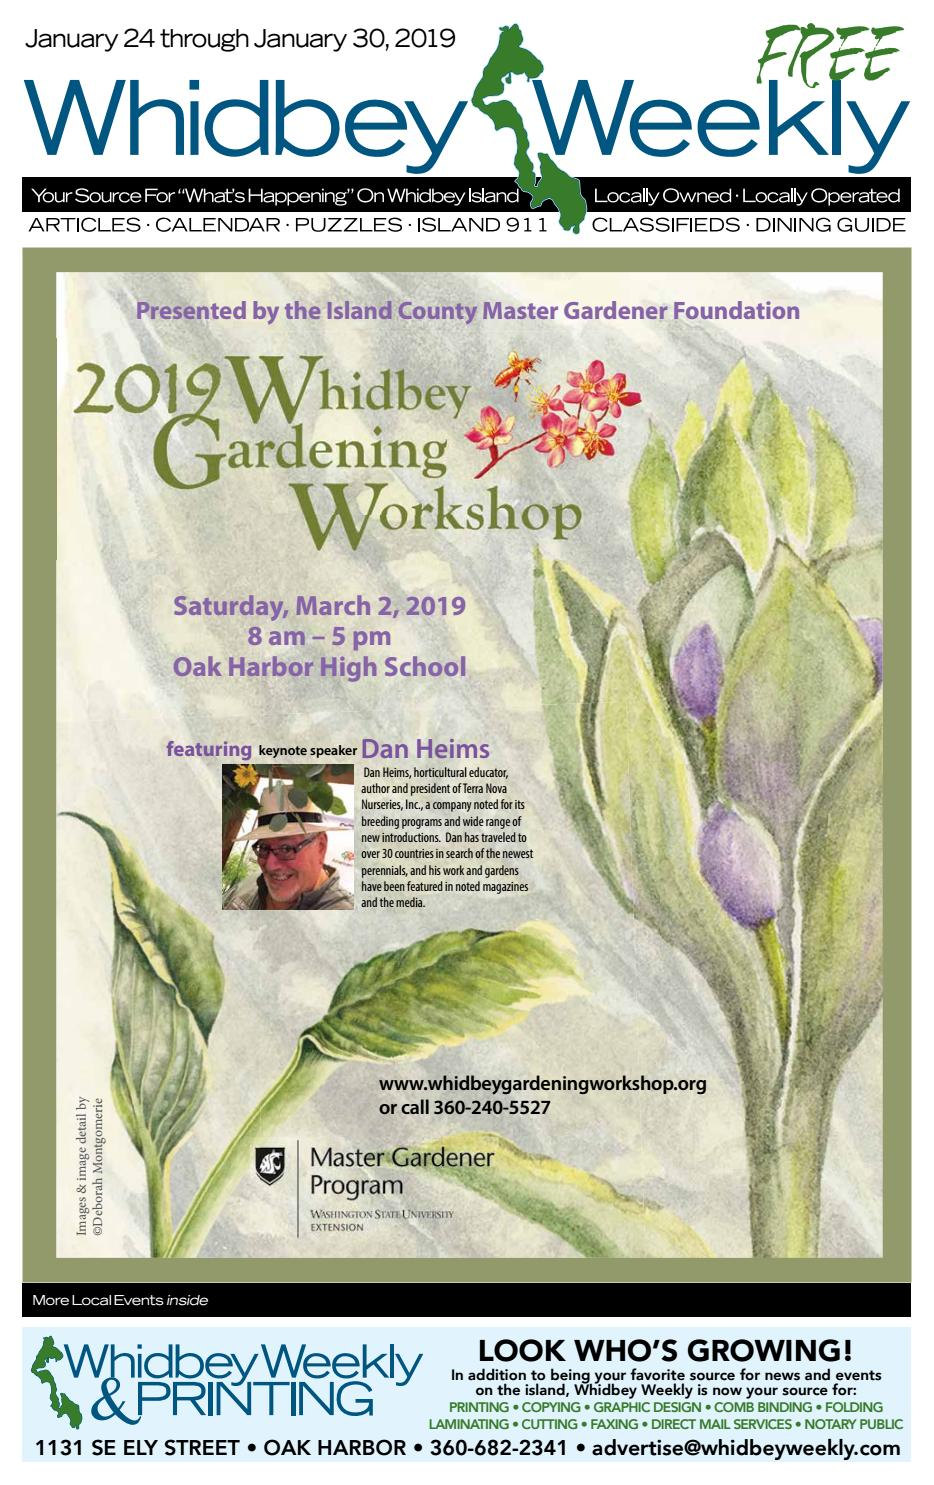 Whidbey Weekly, January 24, 2019 by WhidbeyWeekly com - issuu